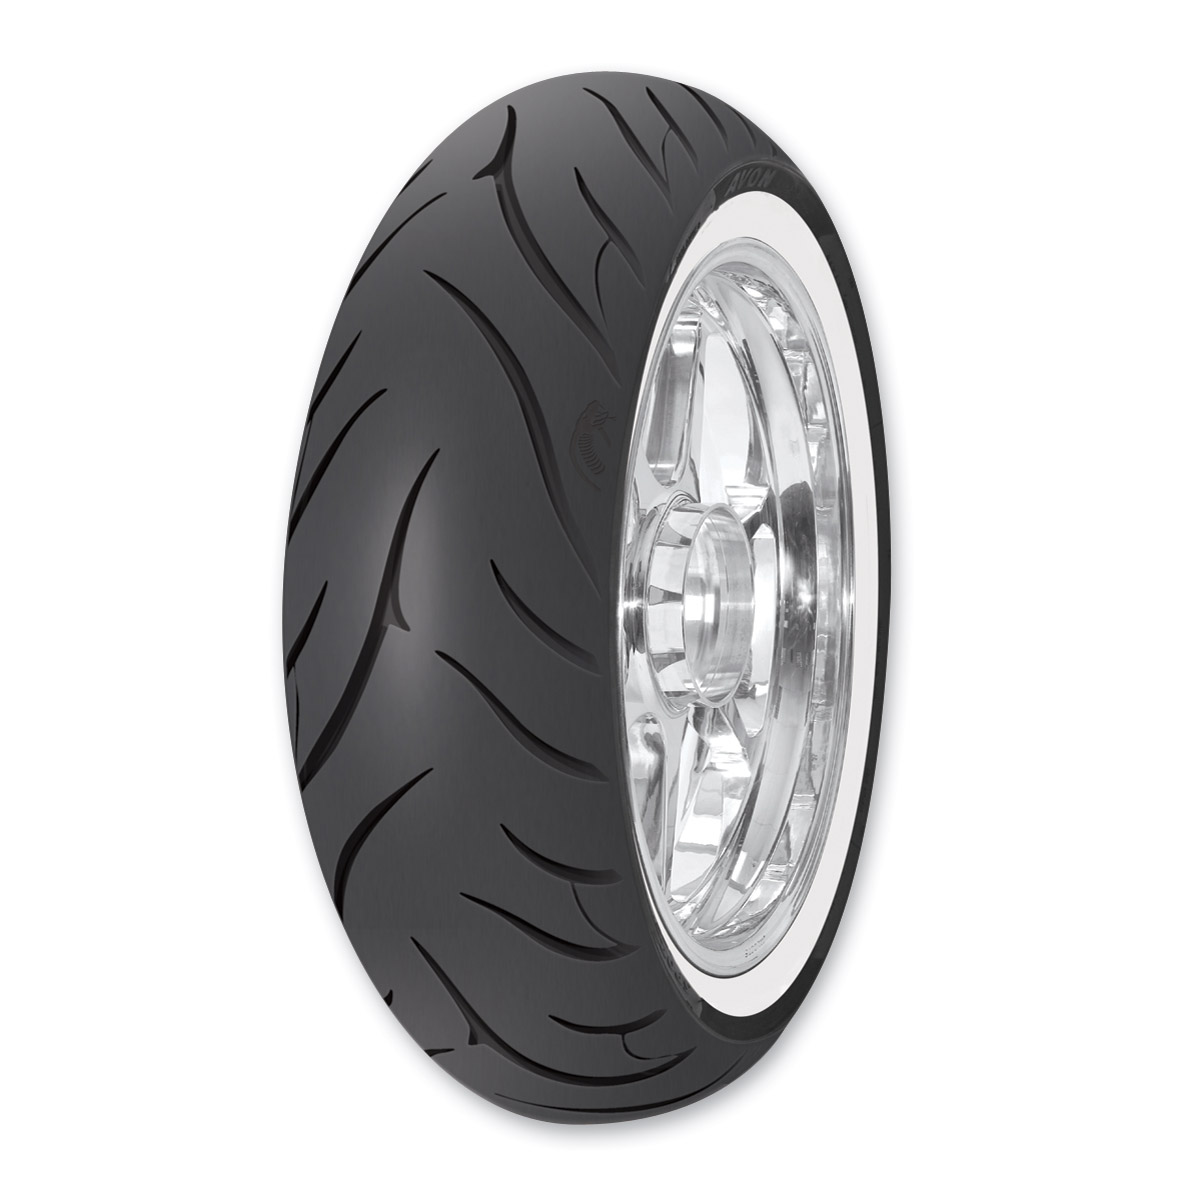 Avon AV72 Cobra MT90-16 Wide Whitewall Rear Tire